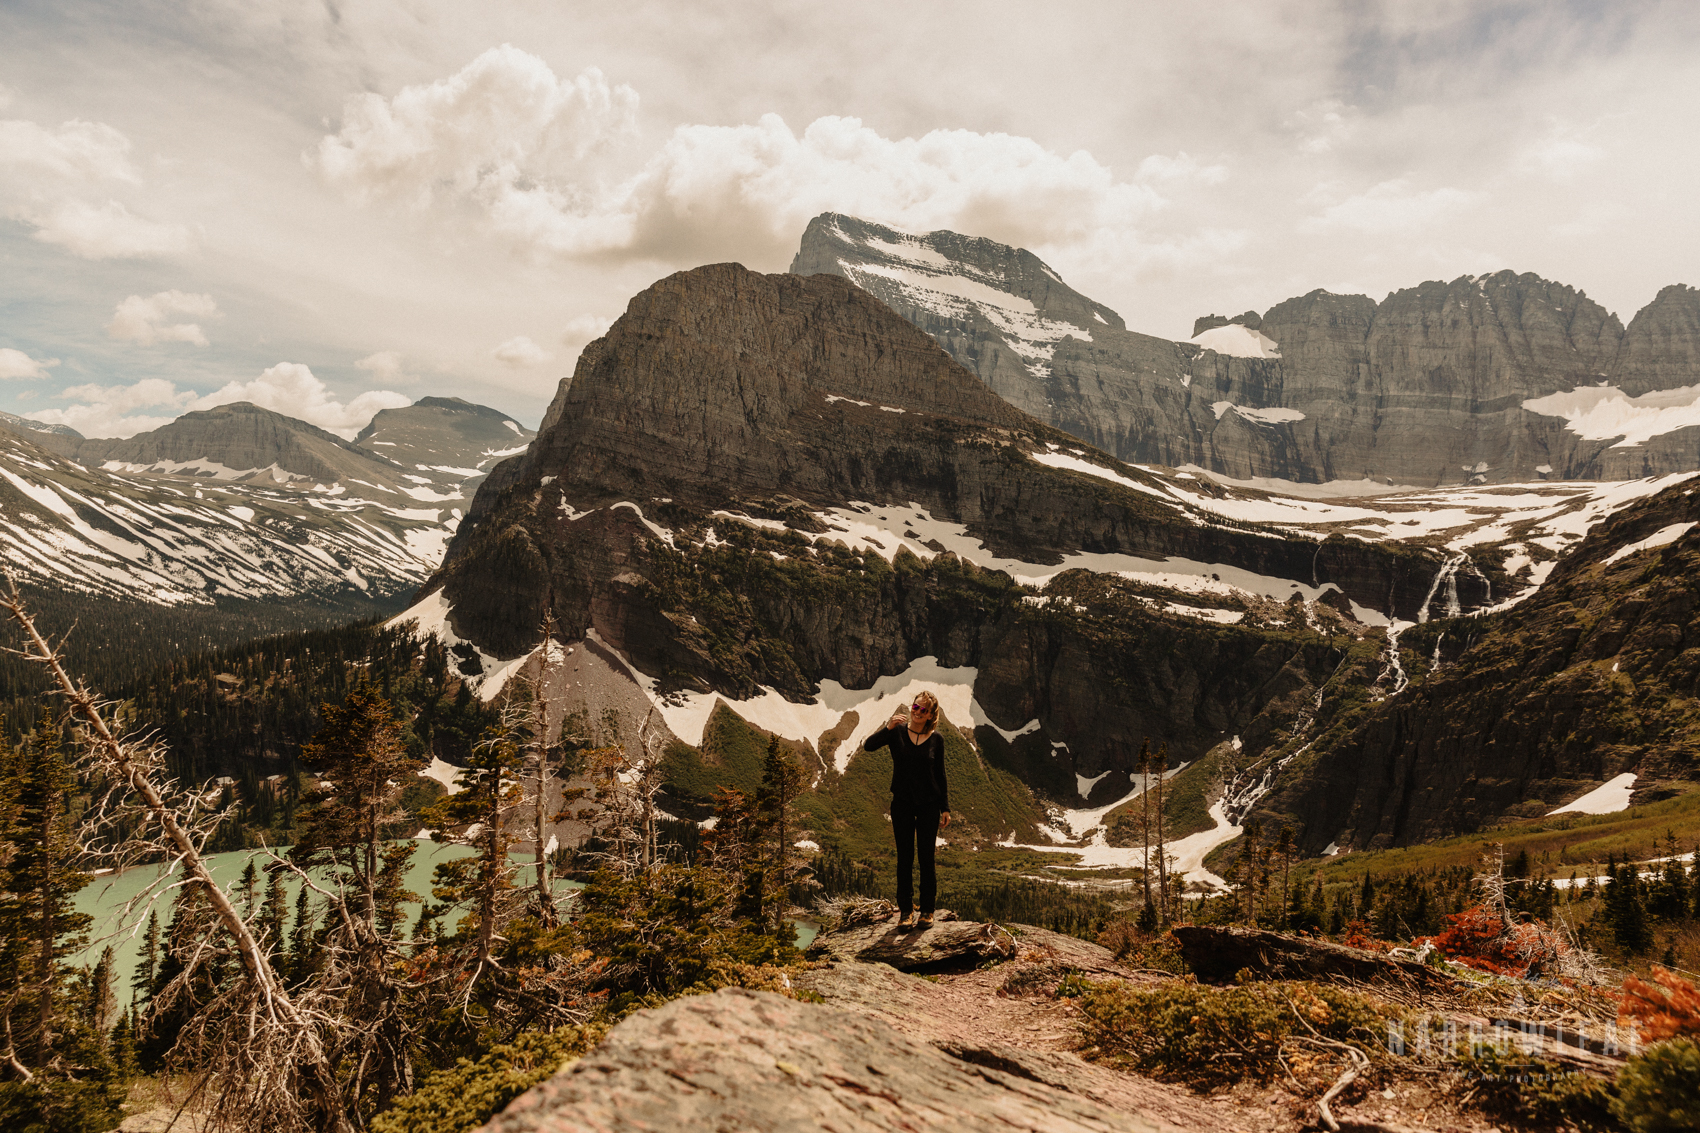 Montana-Grinnell-glacier-trail-lake-Narrowleaf-Love-and-Adventure-elopement-Photography-9722.jpg